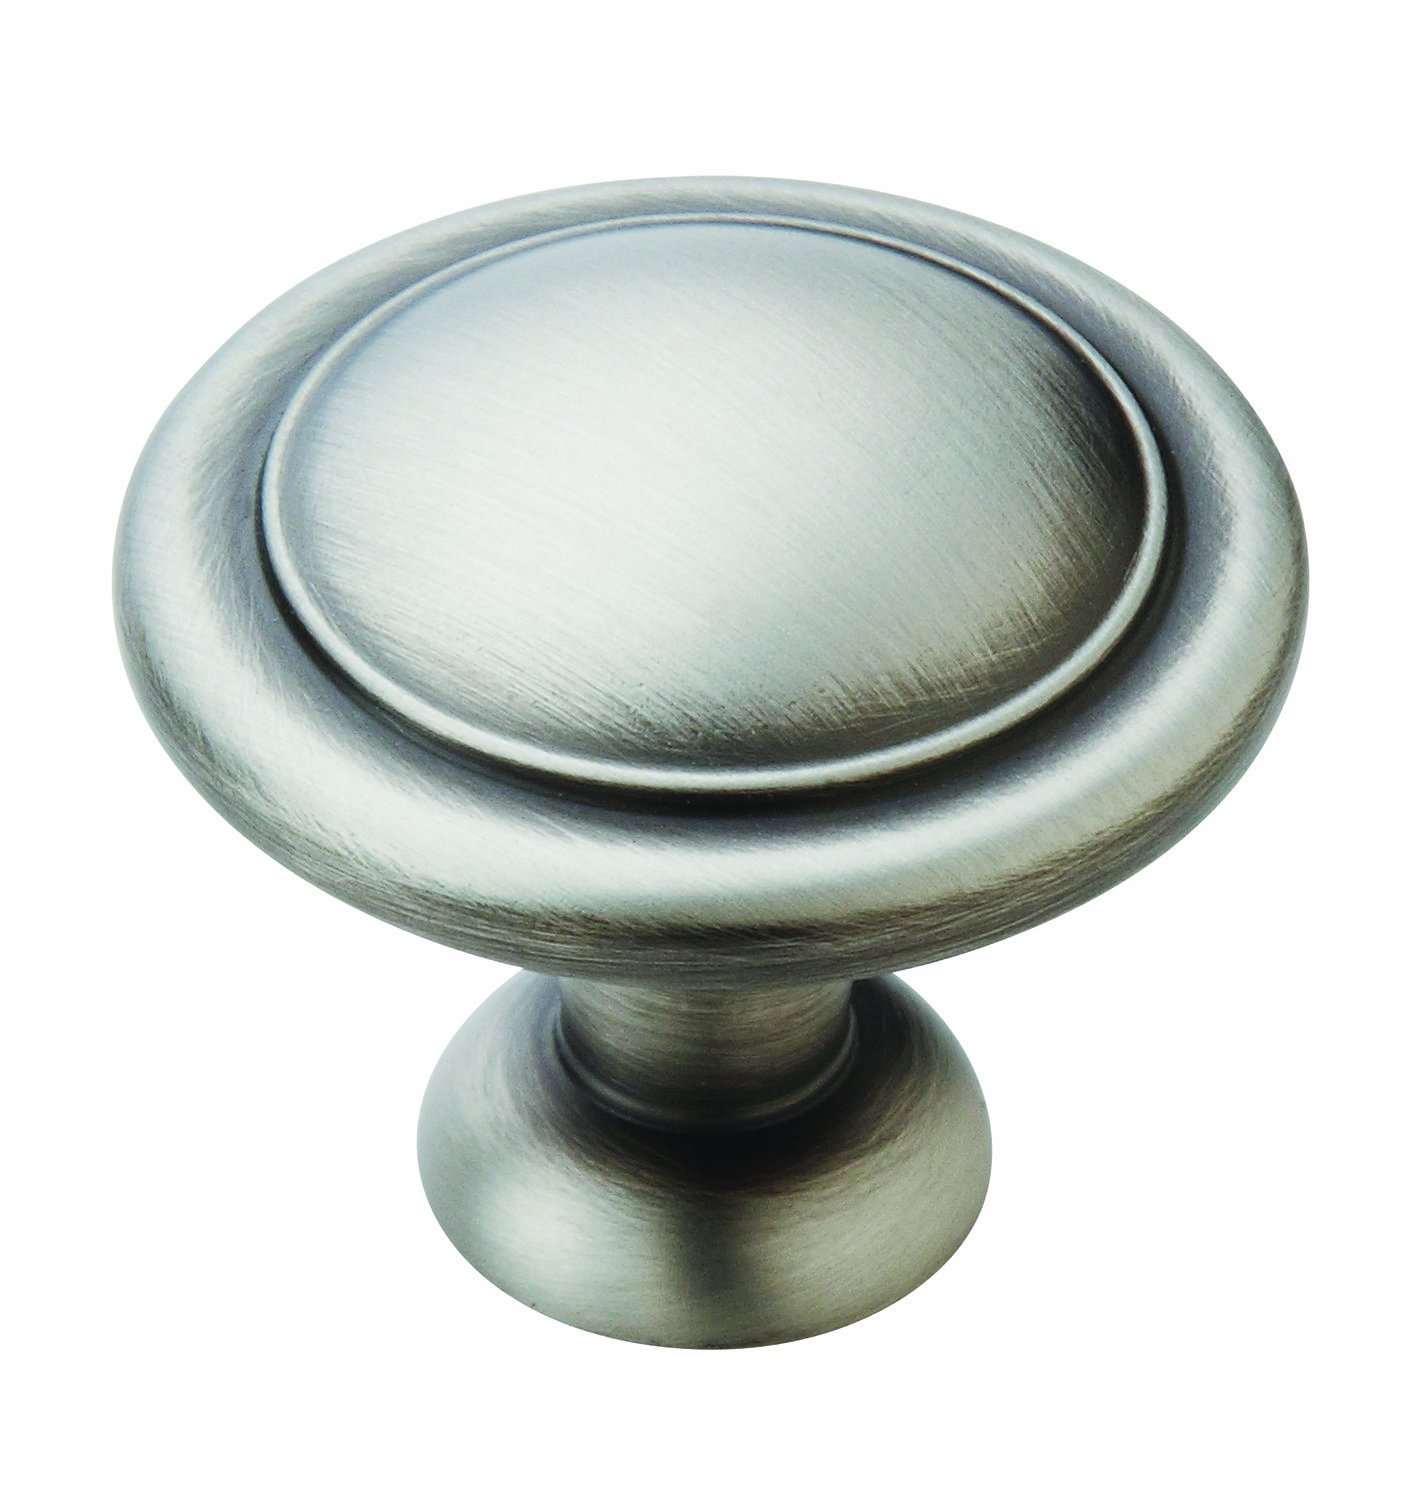 Amerock BP1387 26 Traditional Classic Legacy 1 1/2 Inch Diameter Knob,  Weathered Nickel   Cabinet And Furniture Knobs   Amazon.com